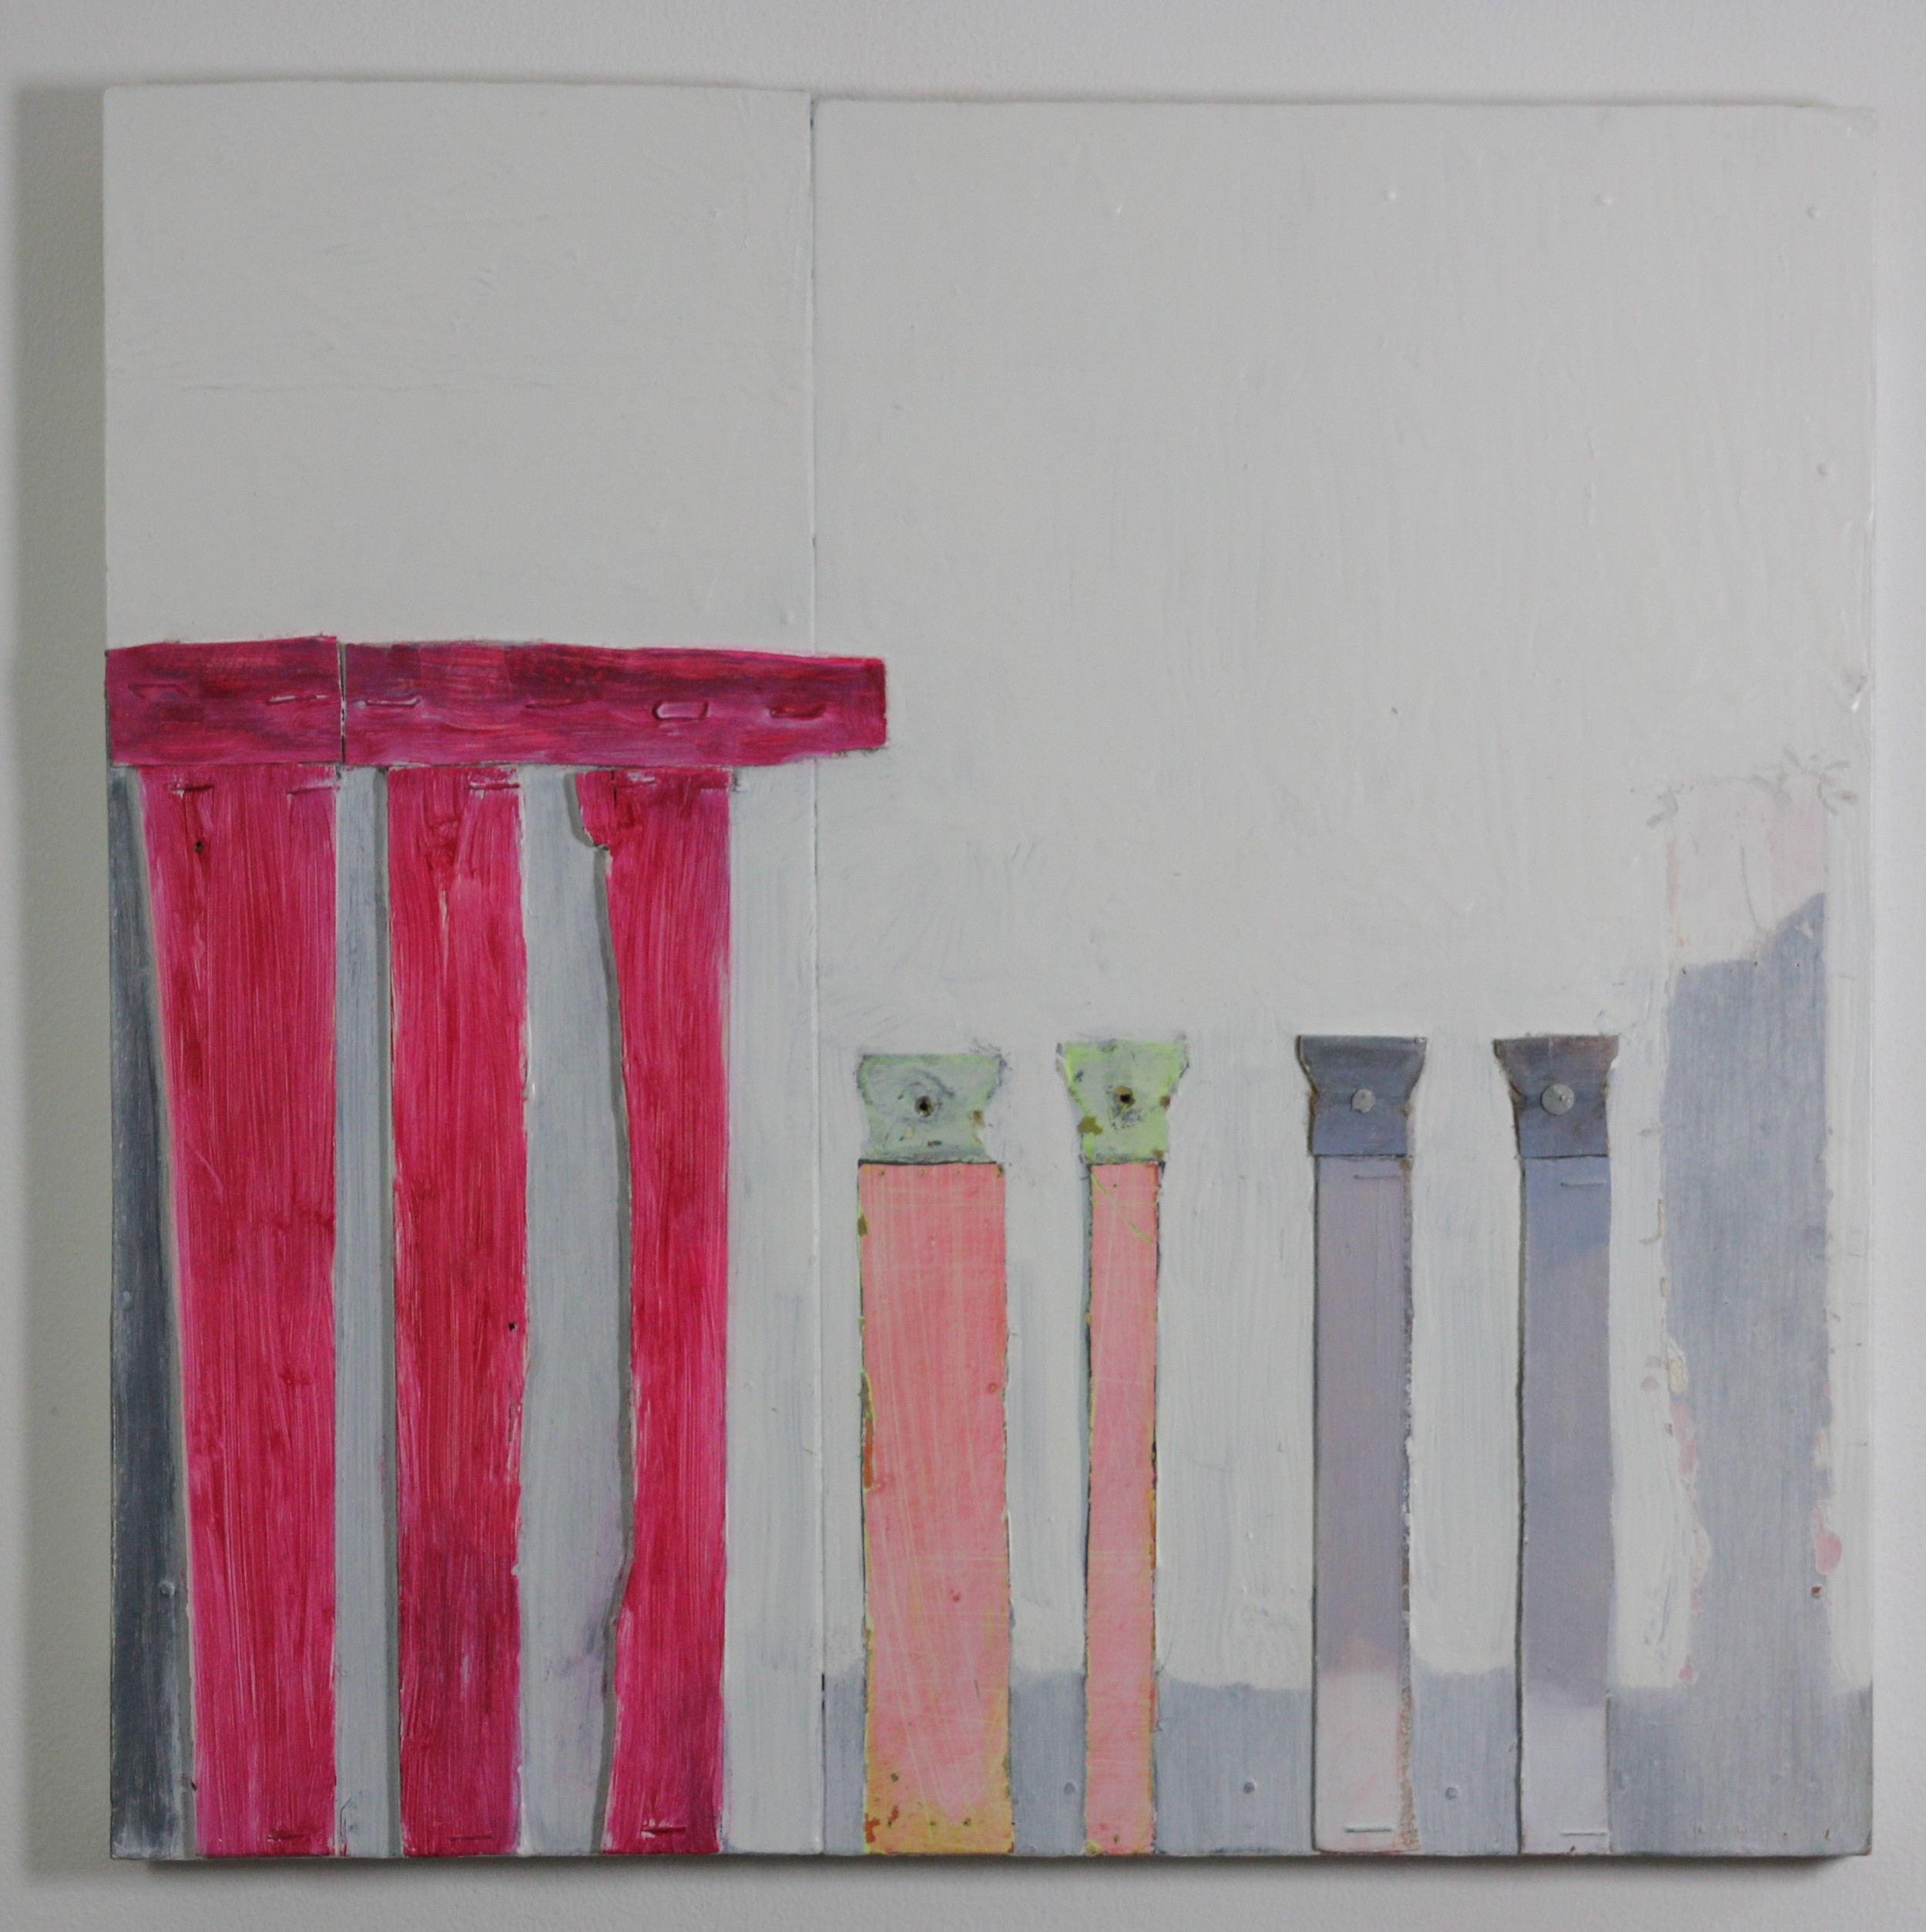 Above: 'Untitled (Pantheon)', assemblage (44 x 44cm), 2015